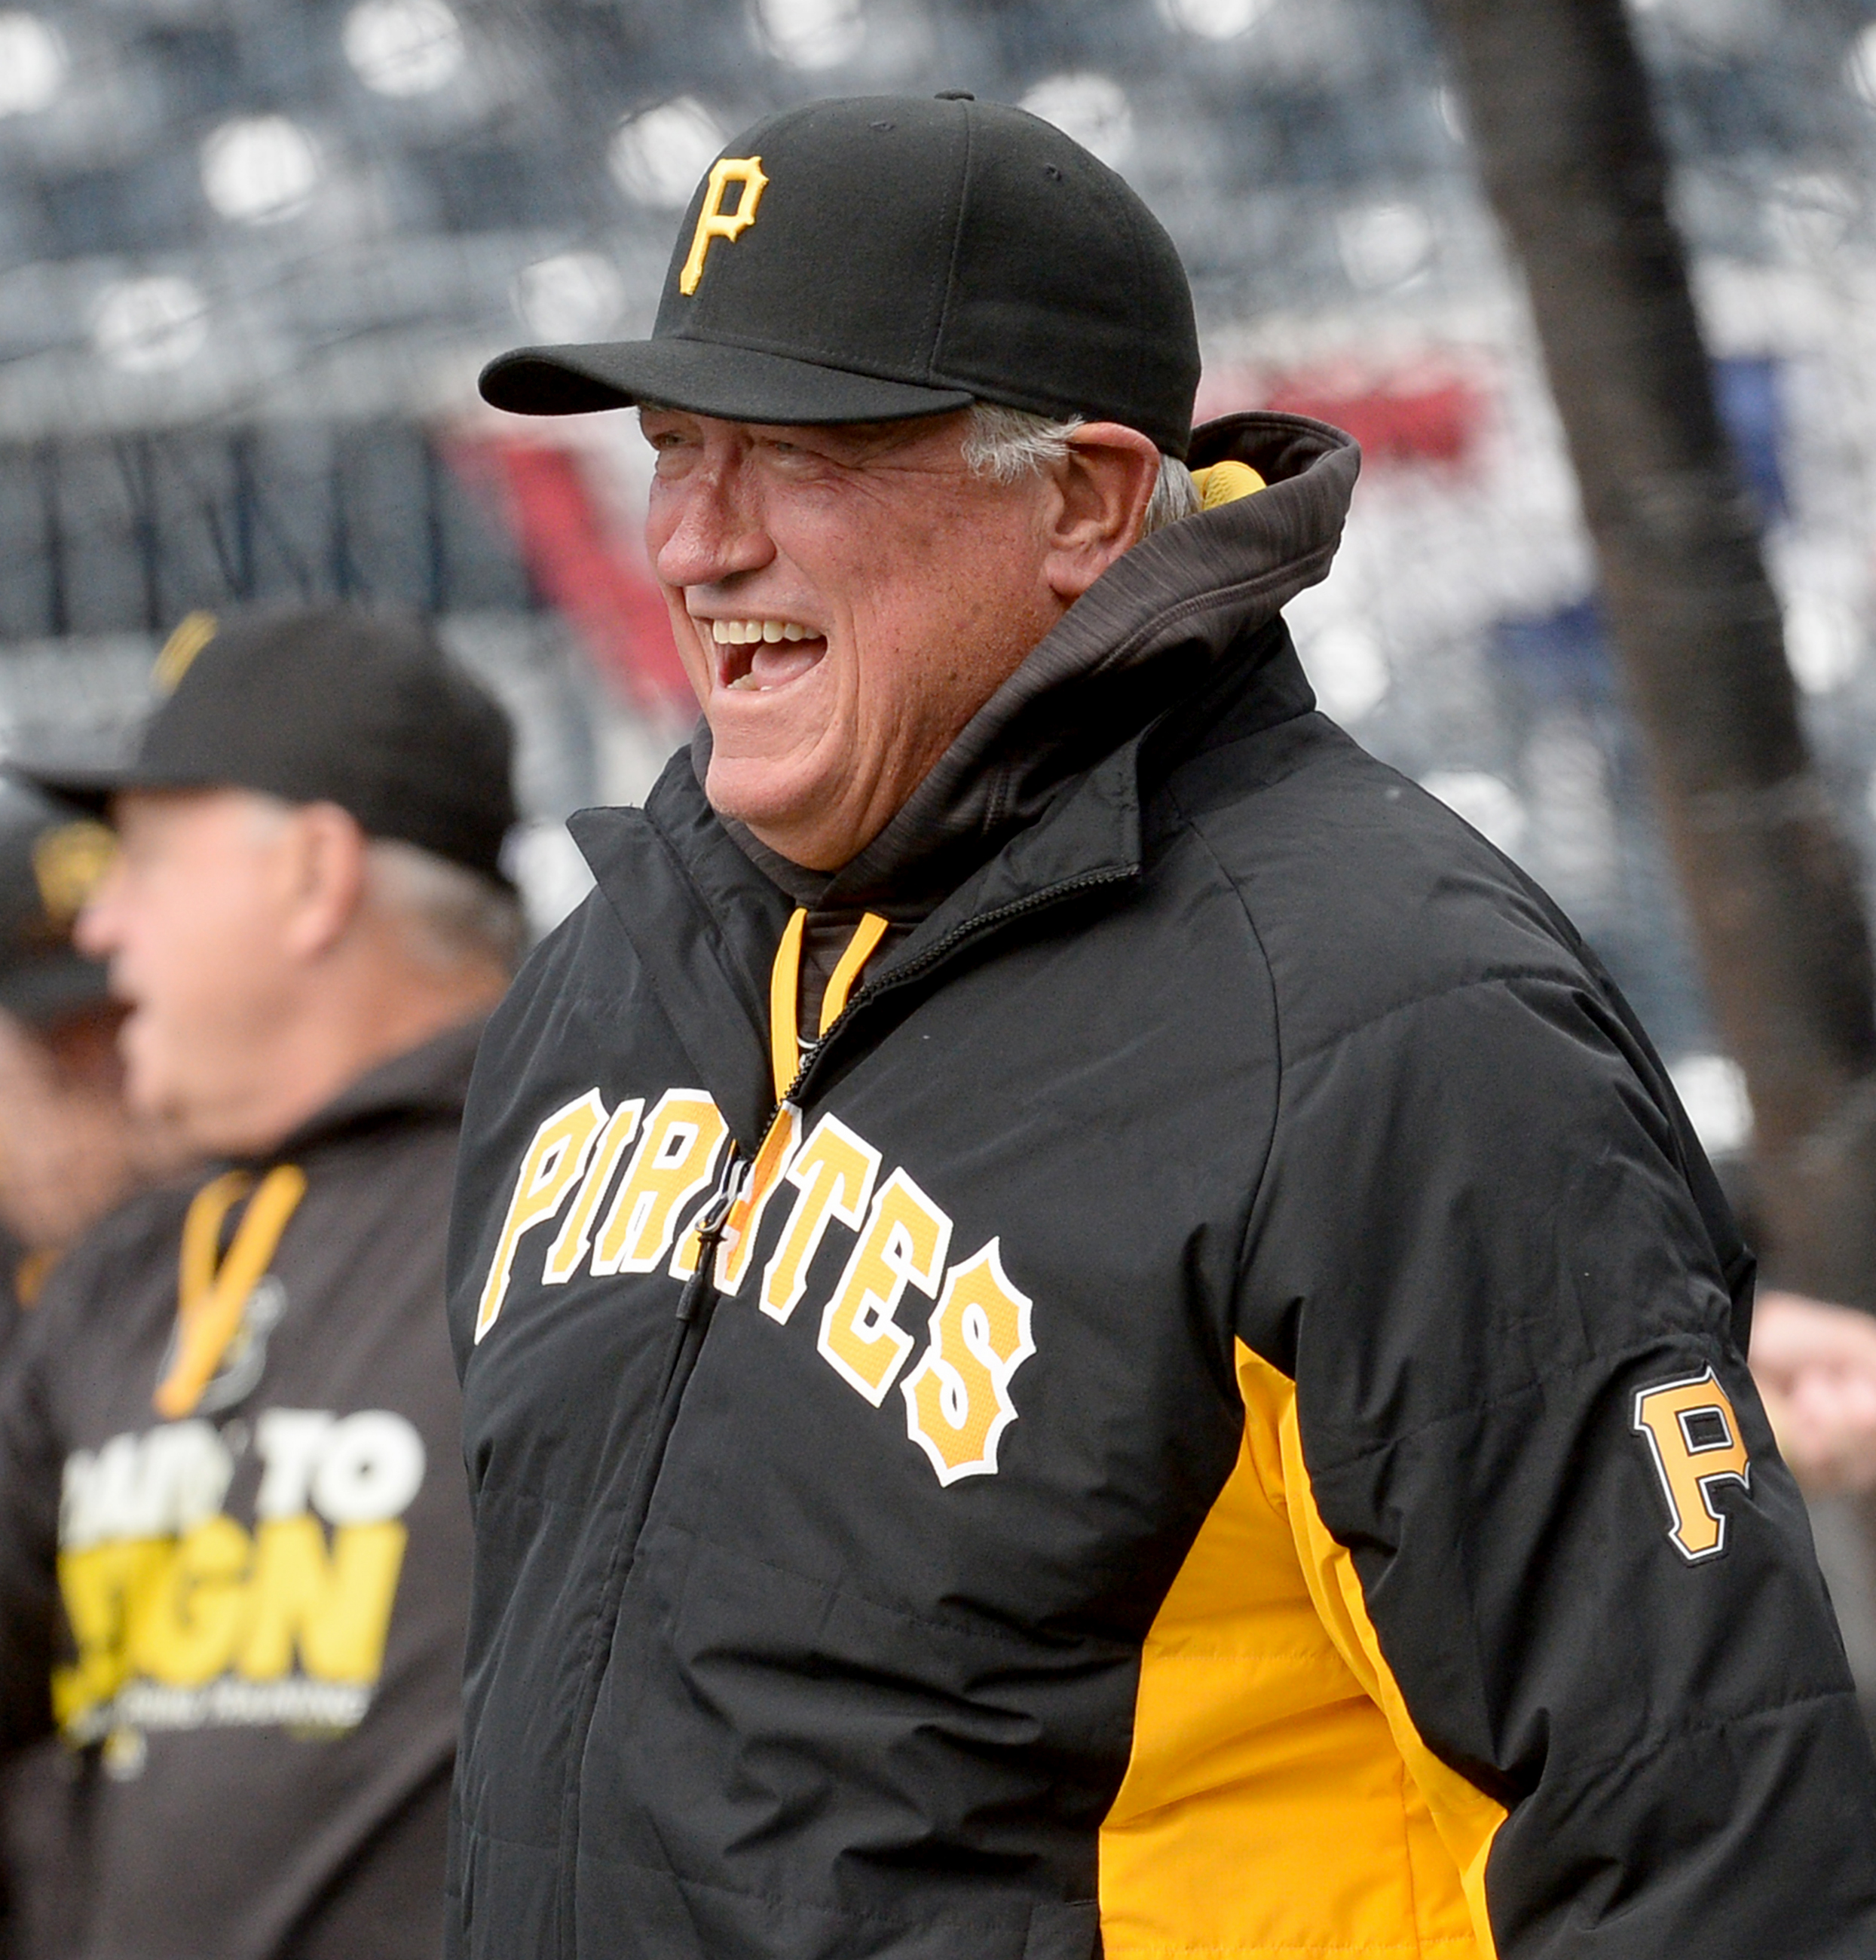 Cubs-Pirates stopped by rain, first tie in majors since 2005